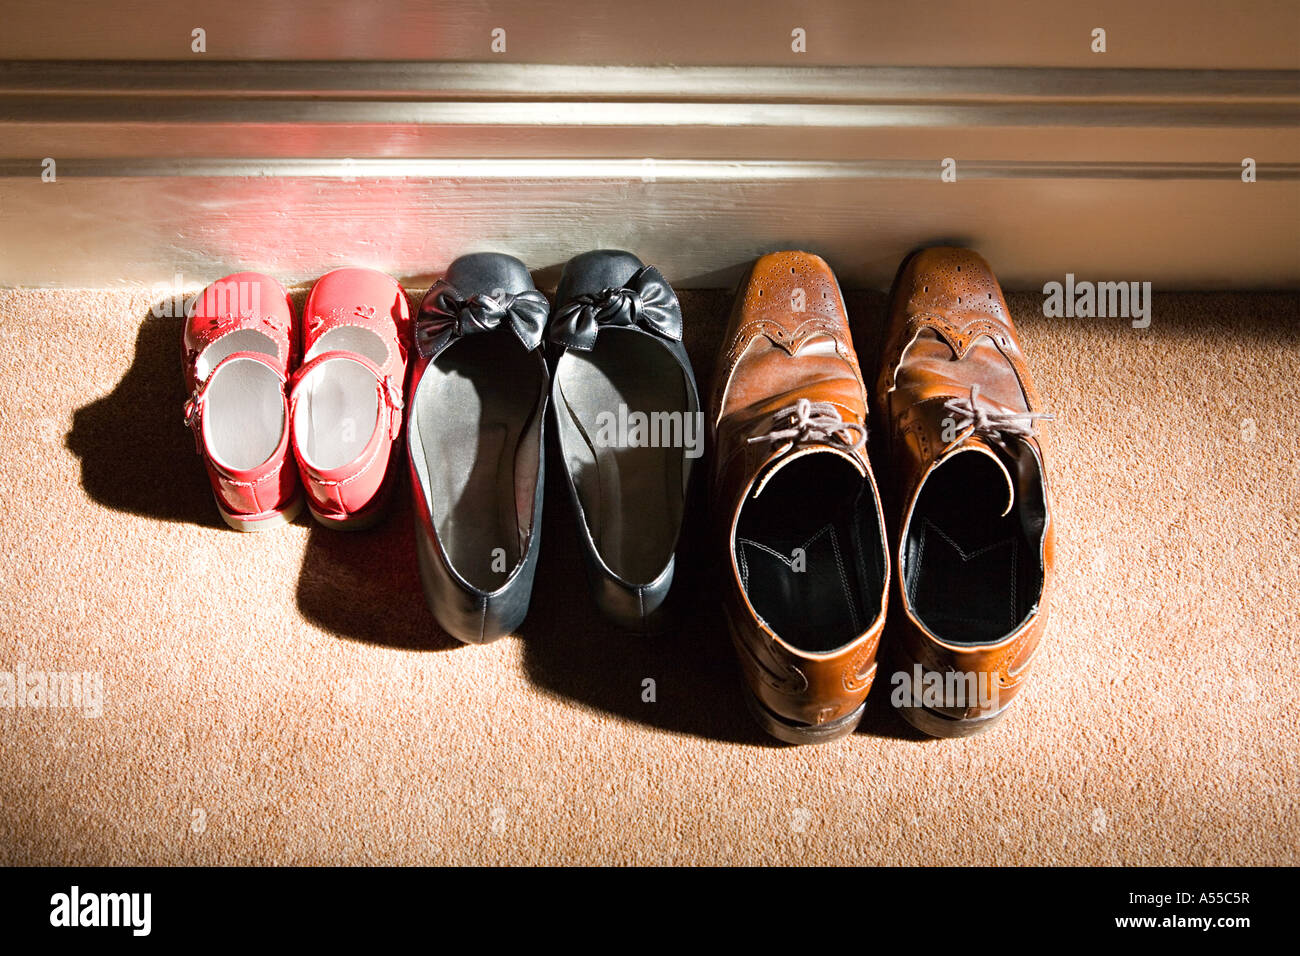 Shoes of a family - Stock Image